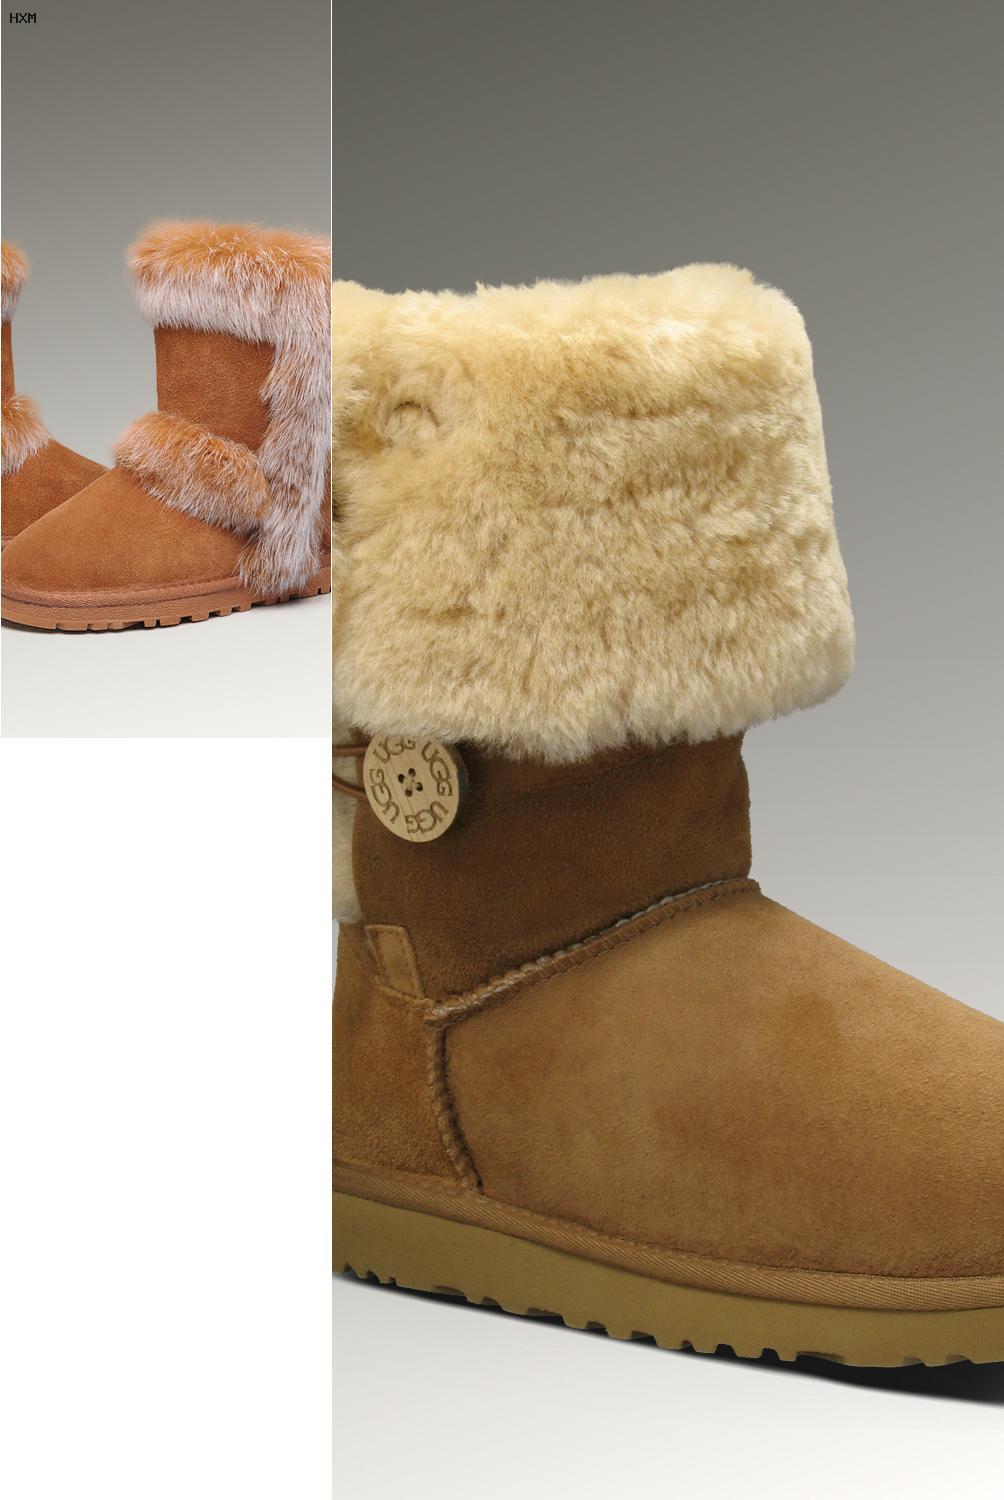 chausson homme style ugg